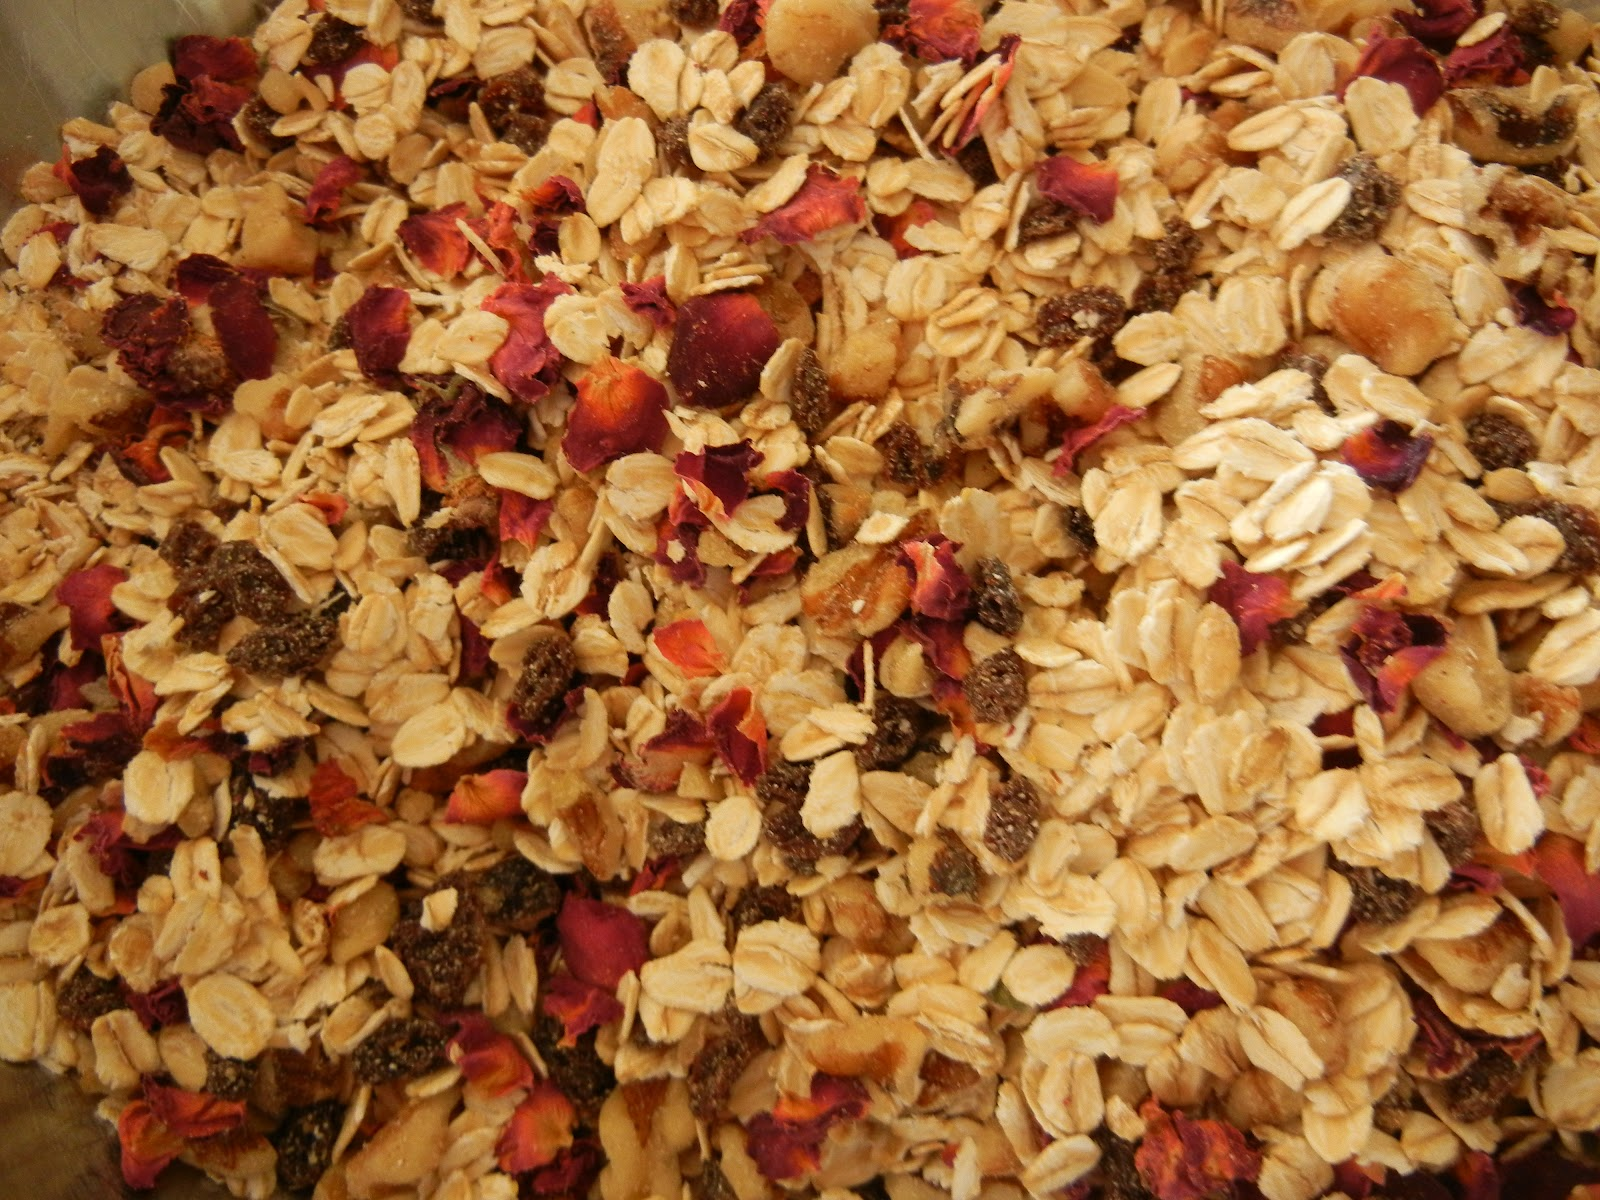 From My Southwest Kitchen: Rose Petal Granola